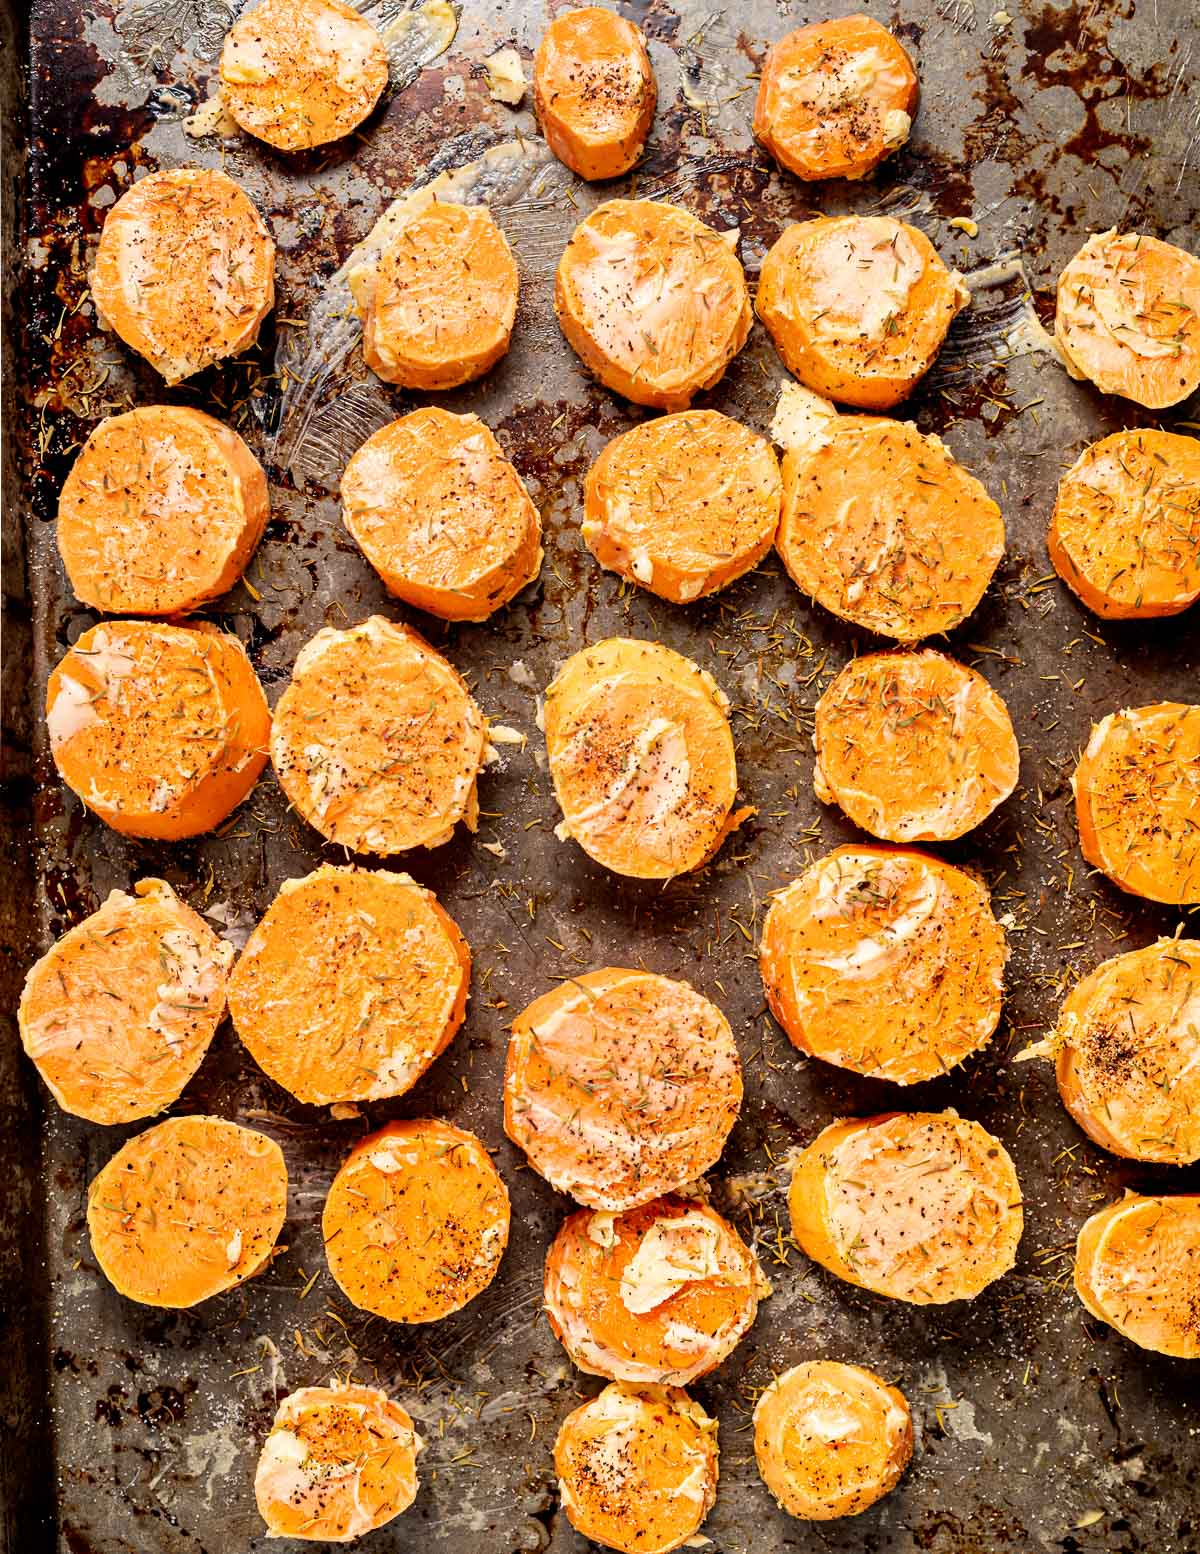 a tray of raw sweet potato rounds coated in vegan butter, herbs and seasoning